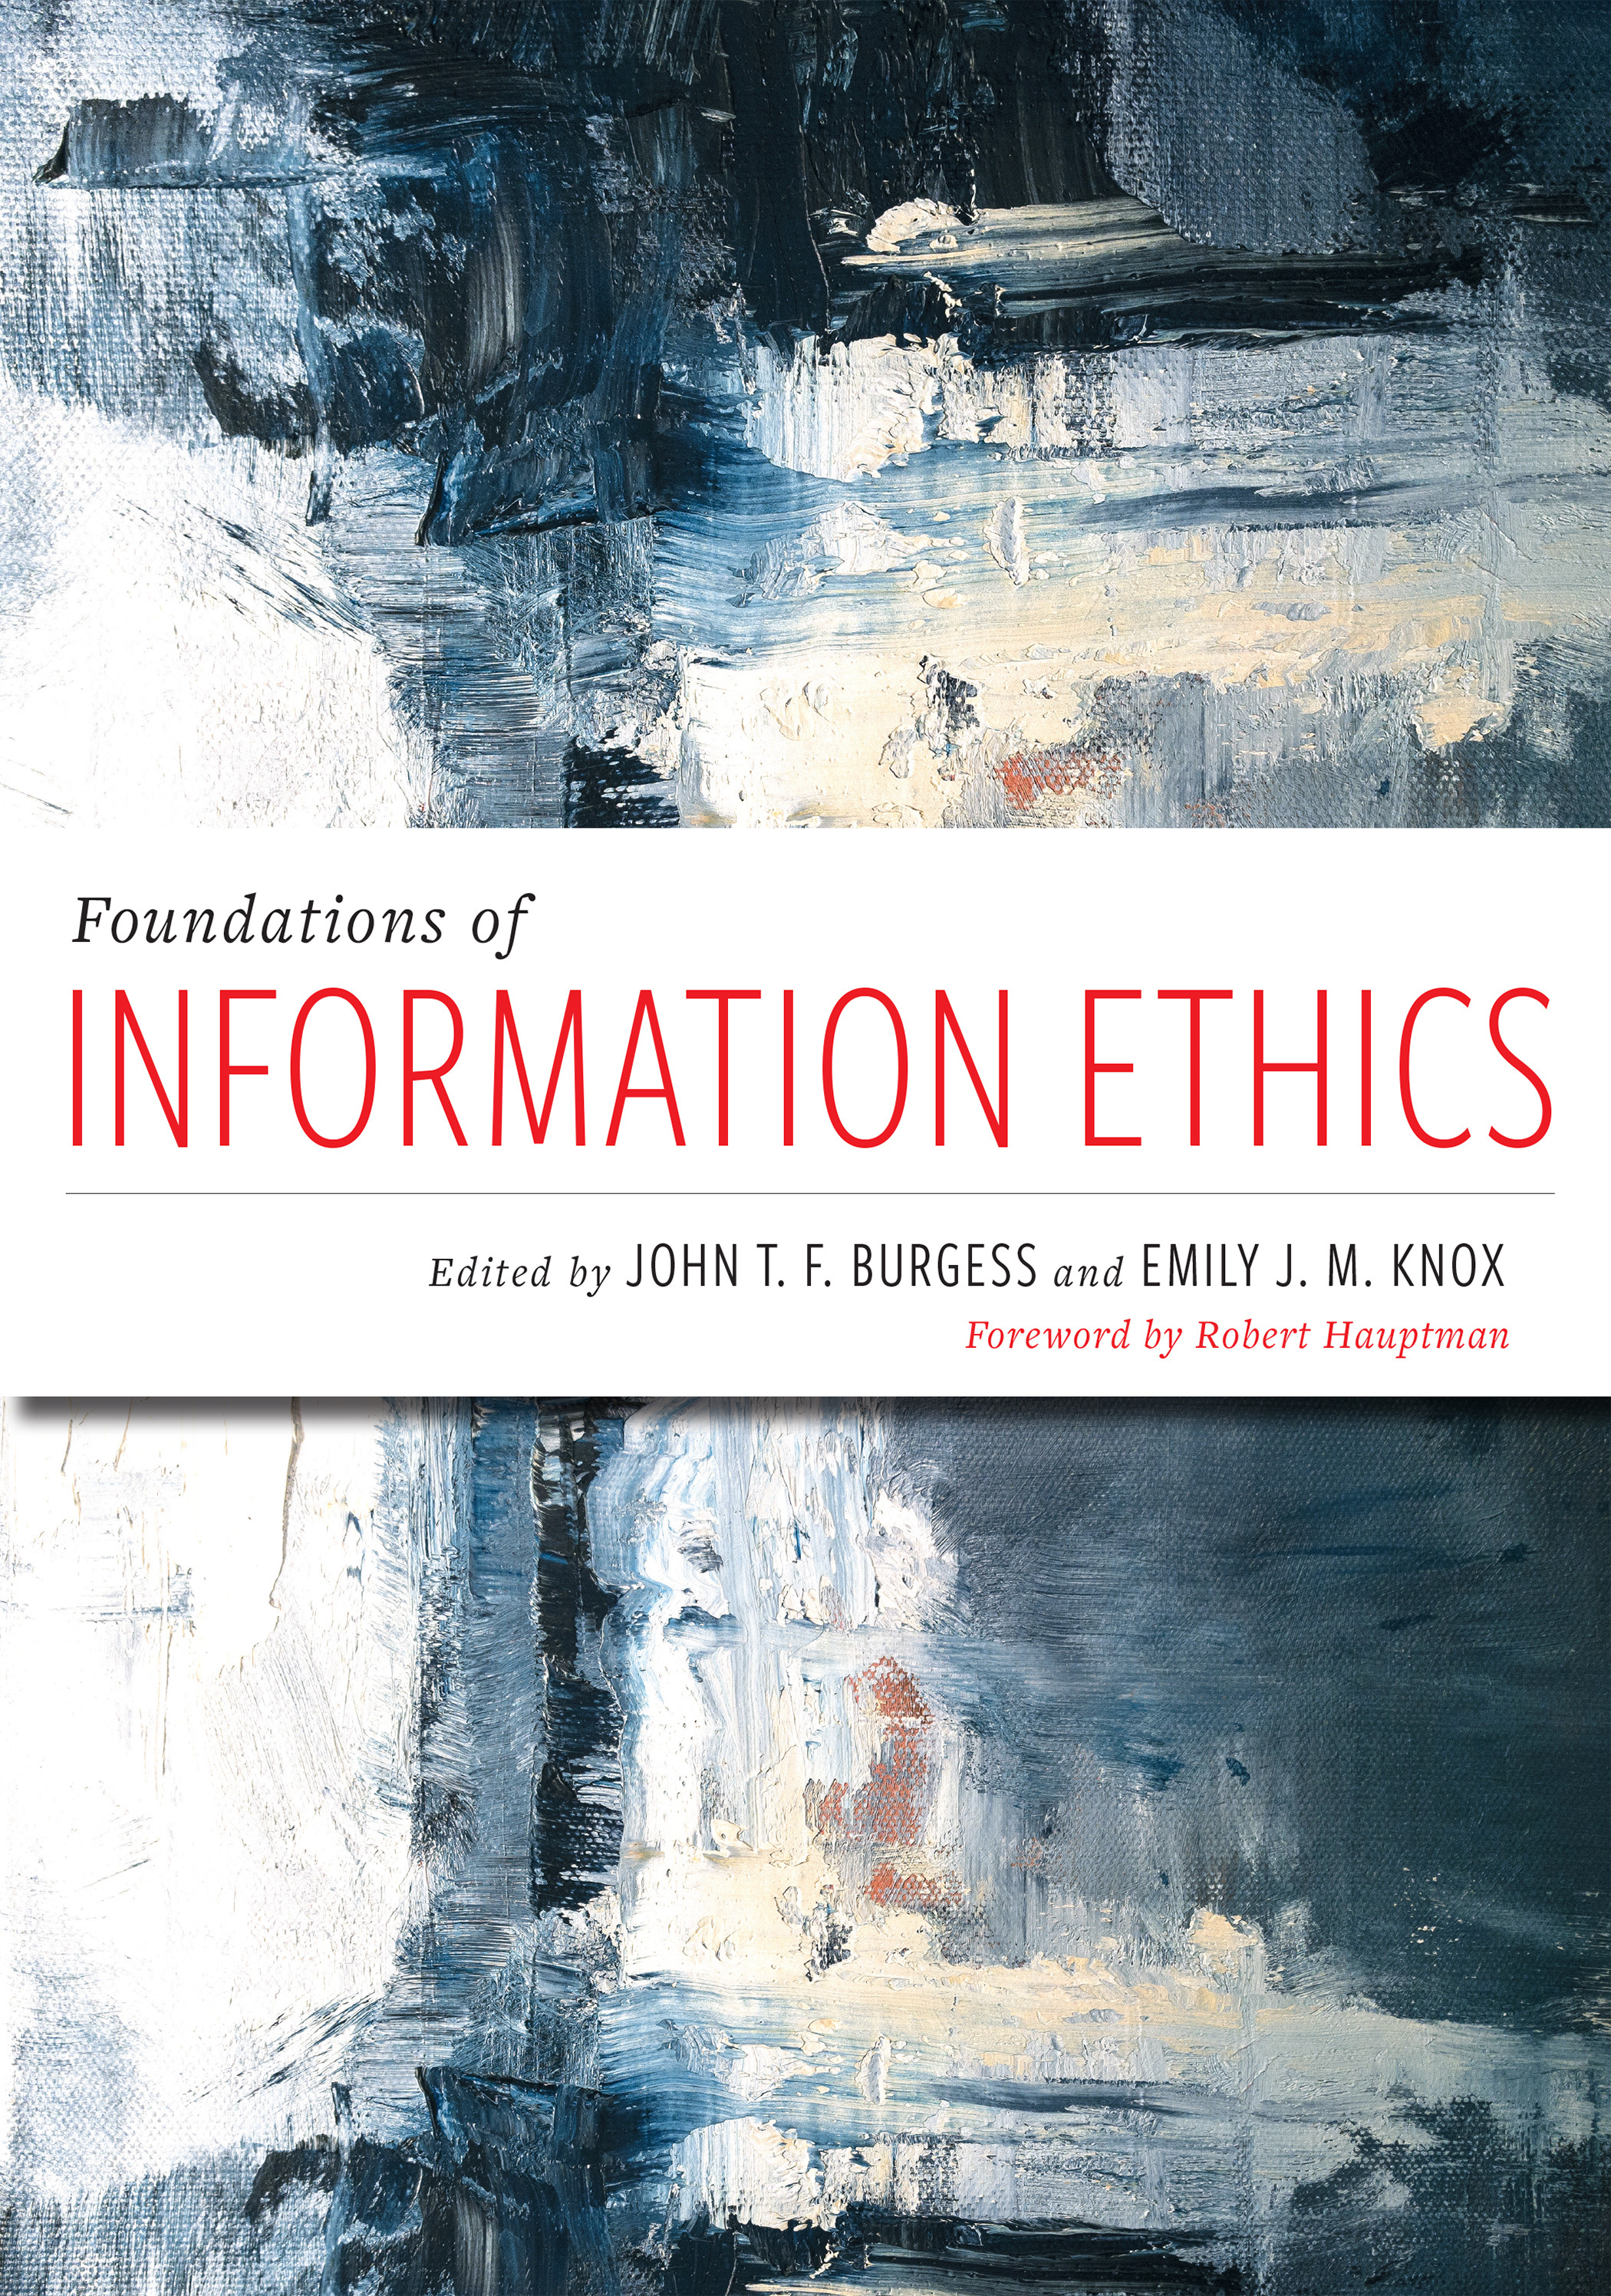 Foundations of Information Ethics